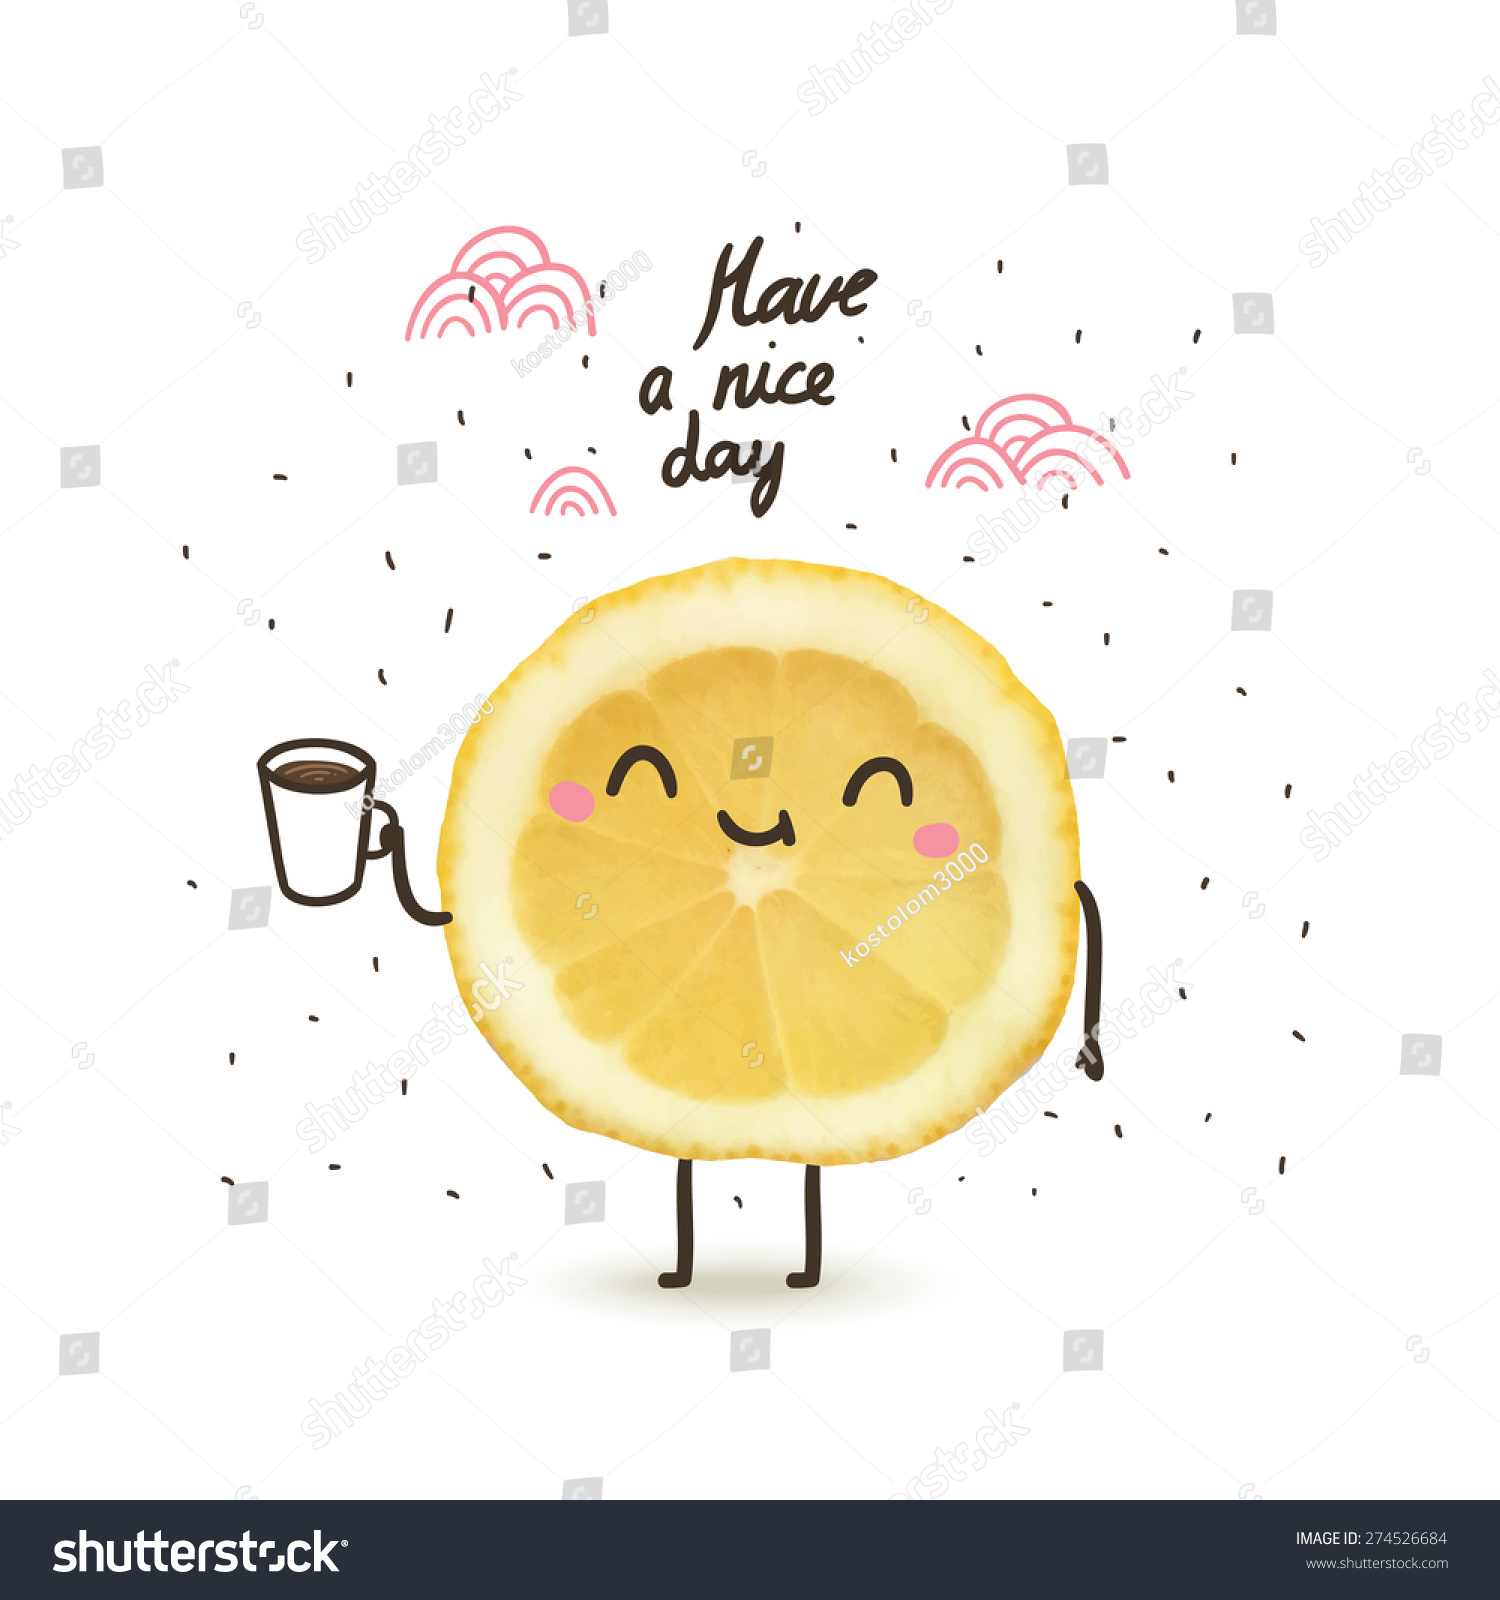 stock-vector-have-a-nice-day-cute-funny-cartoon-illustration-with-lemon-drinking-coffee-or-tea-274526684.jpg